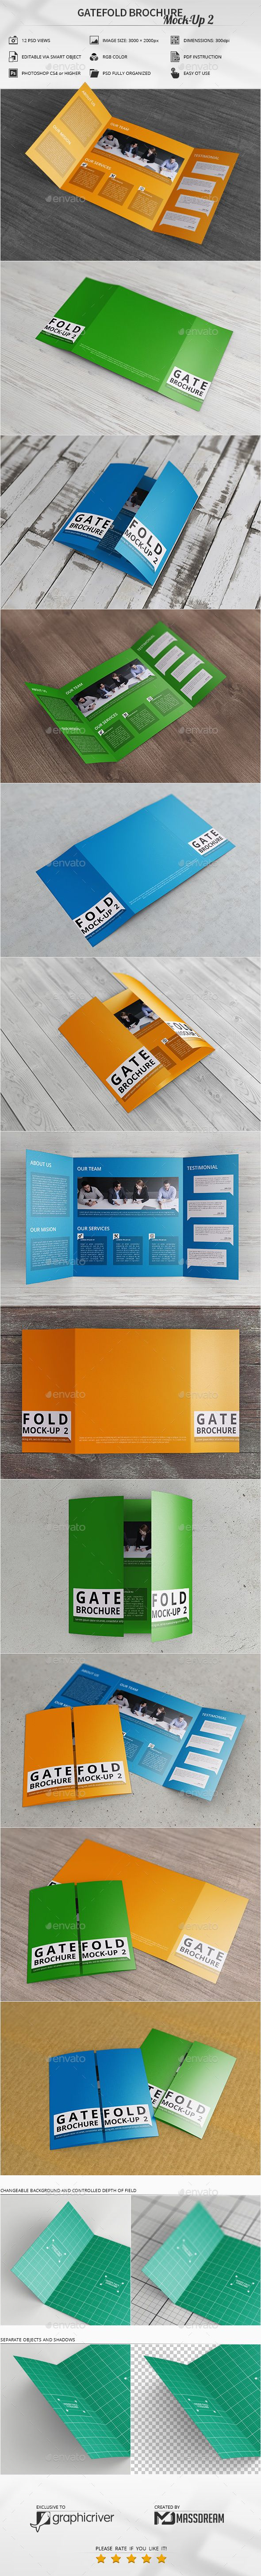 Gatefold Brochure MockUp   Brochures Mockup And Adobe